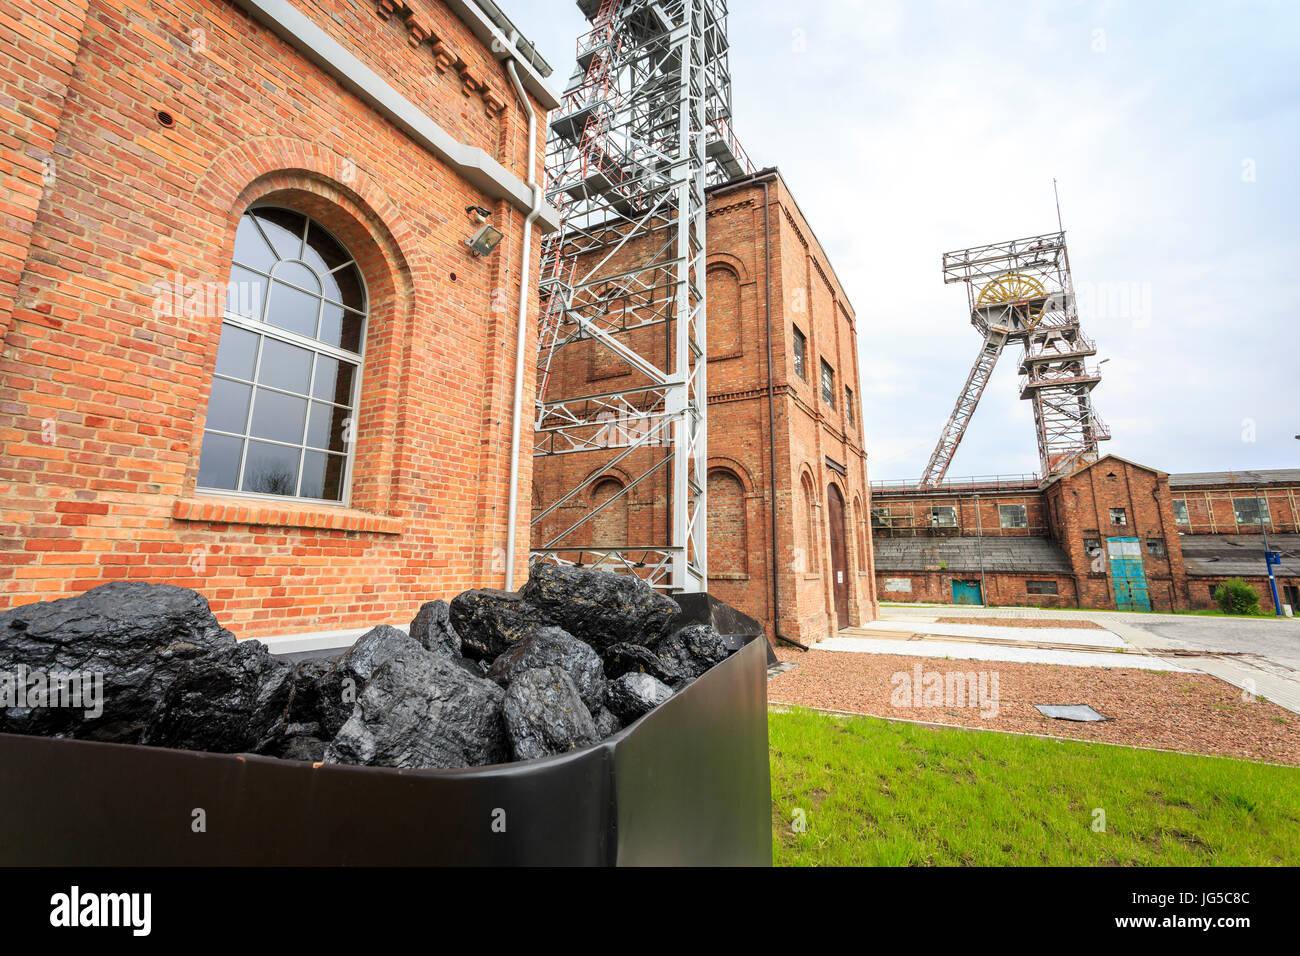 Coal mine, two mining shaft and a cart full of fuel, Rybnik - Stock Image